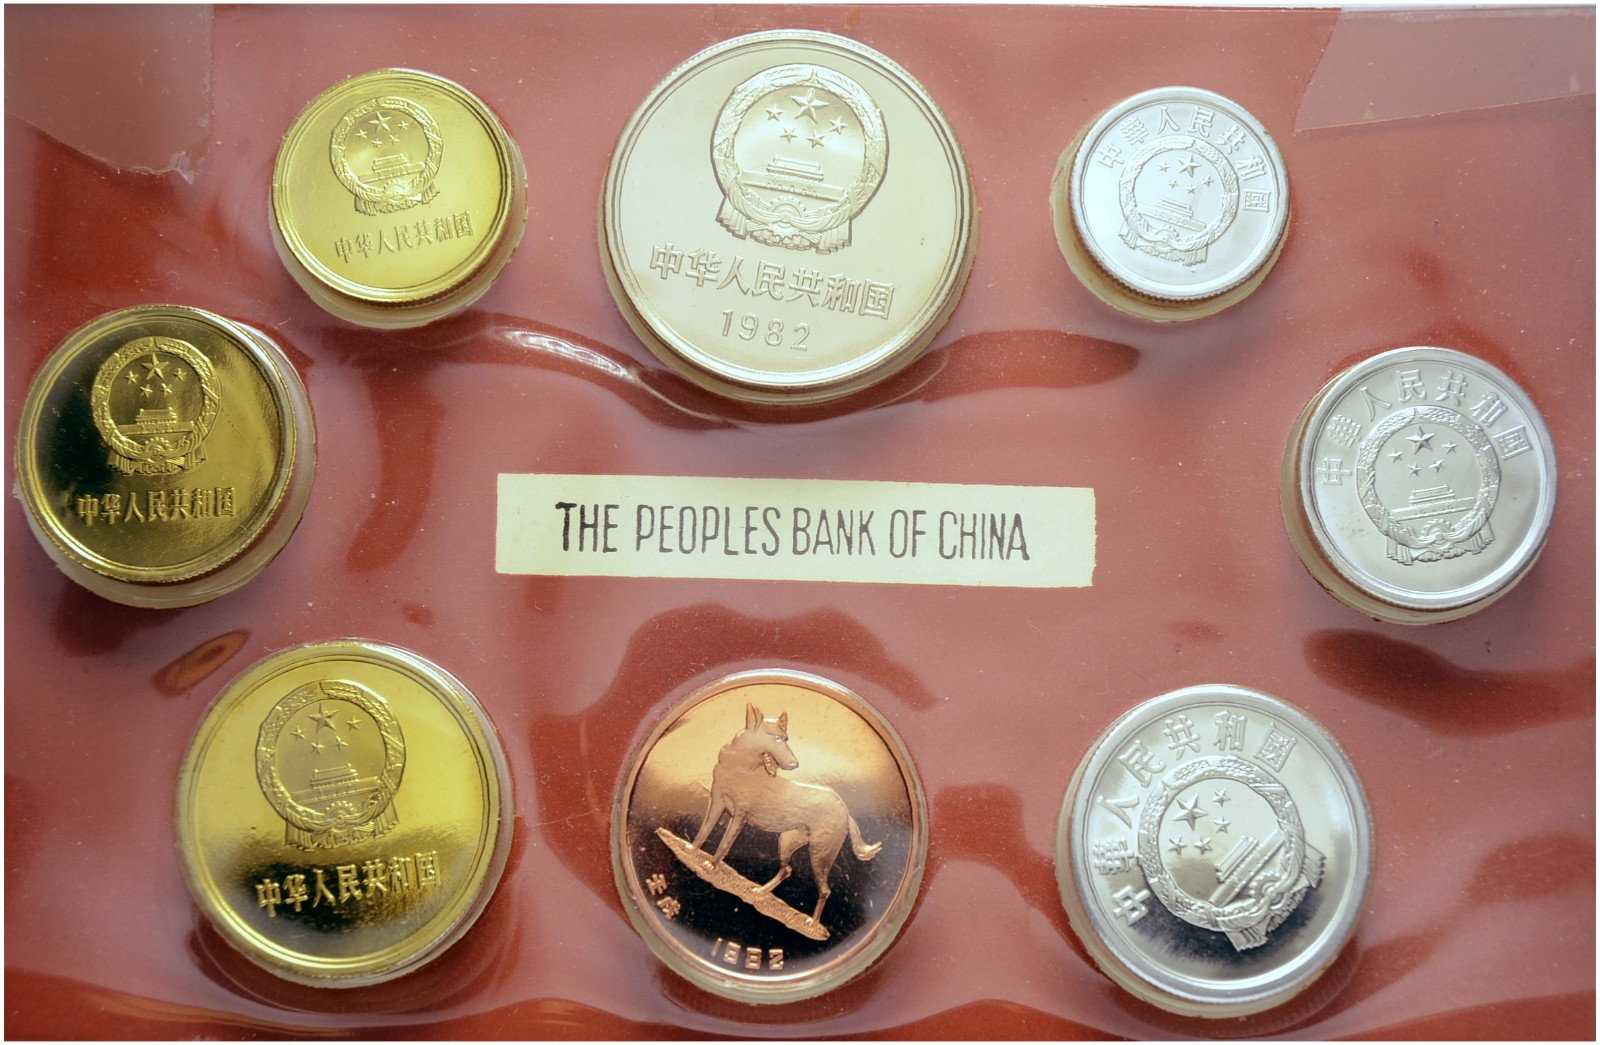 China 1989 Panda Km A 221 Brilliant Uncirculated Silver Coin Coins & Paper Money Coins: World